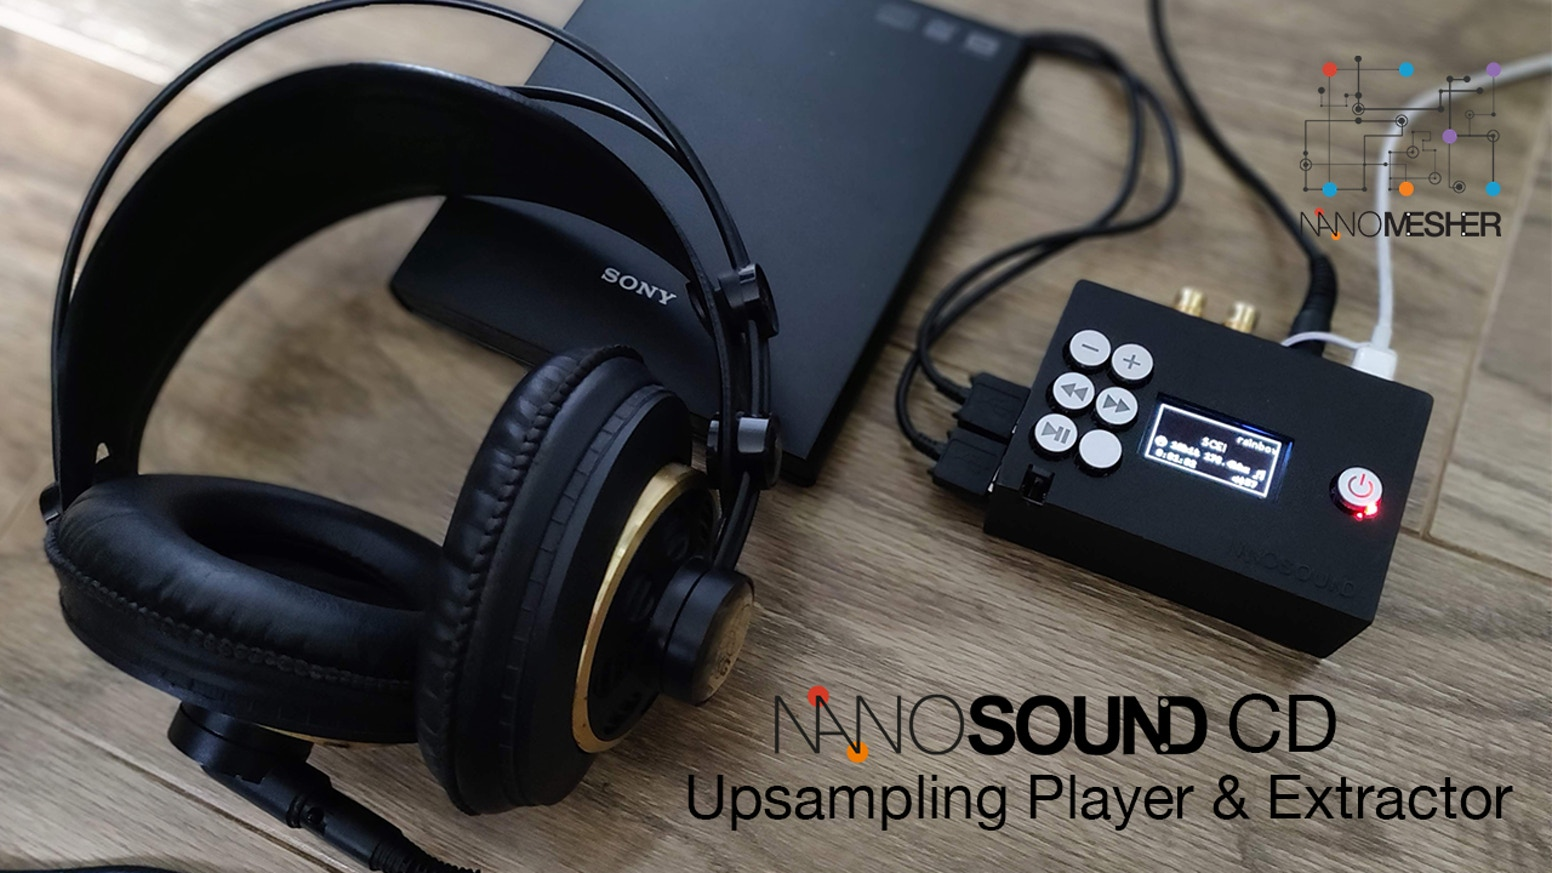 NanoSound CD is an Upsampling CD Player , Lossless Audio Extractor & Network Audio Player with Hi-Fi DAC, infrared and mobile control